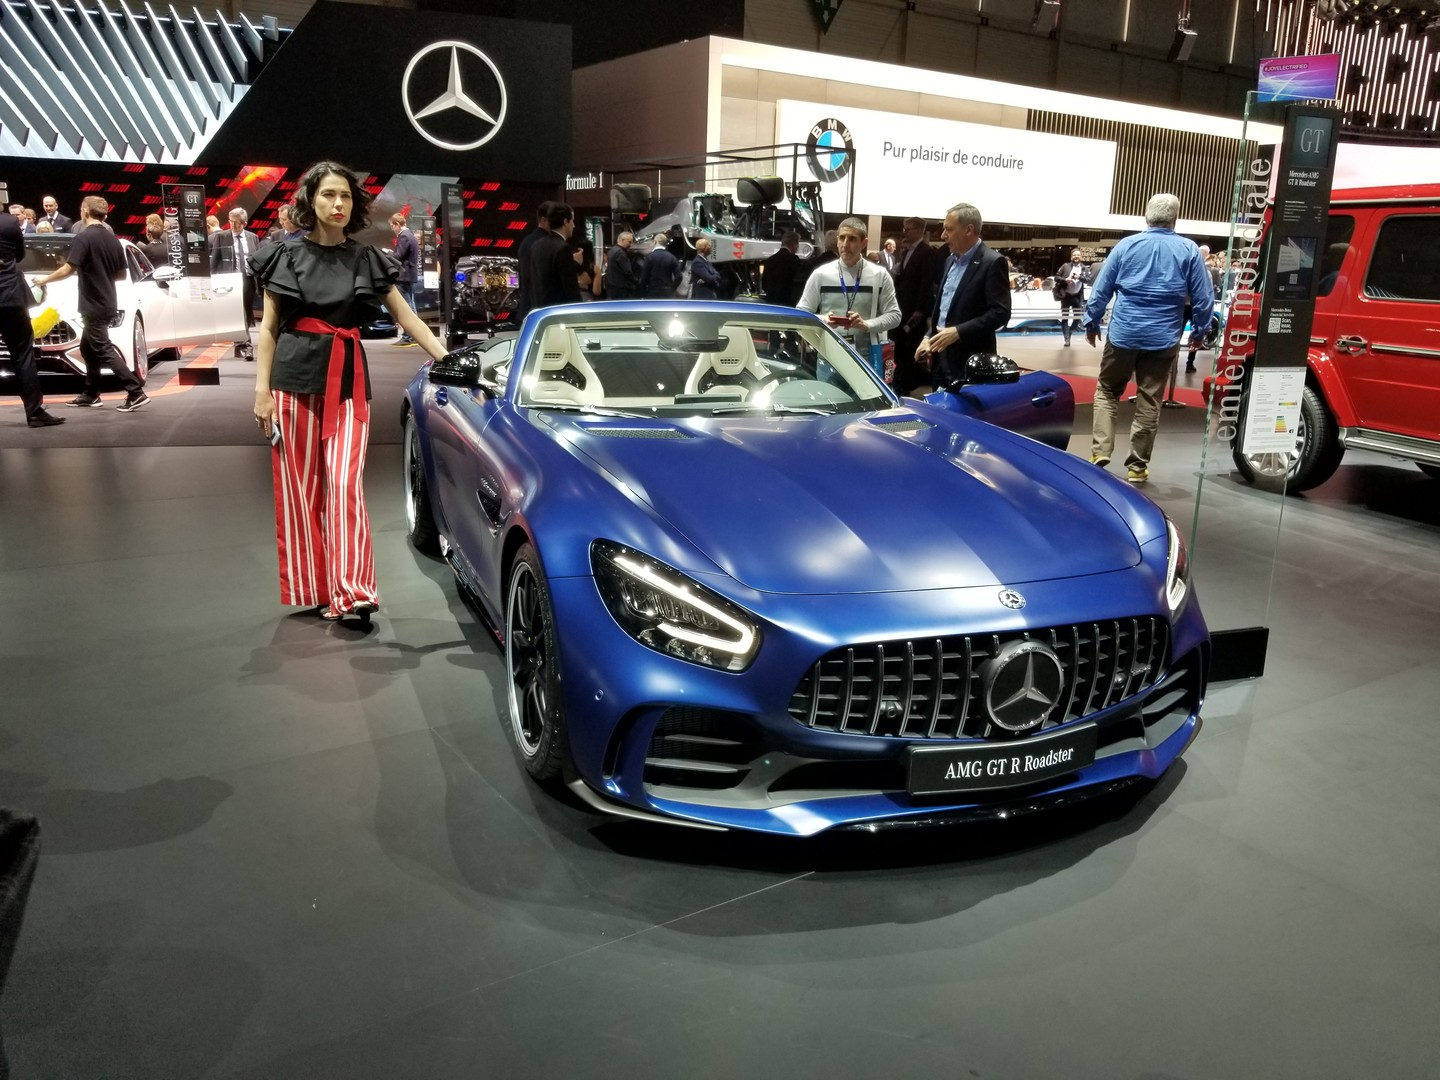 mercedes-amg-gt-r-roadster-salone-ginevra-2019